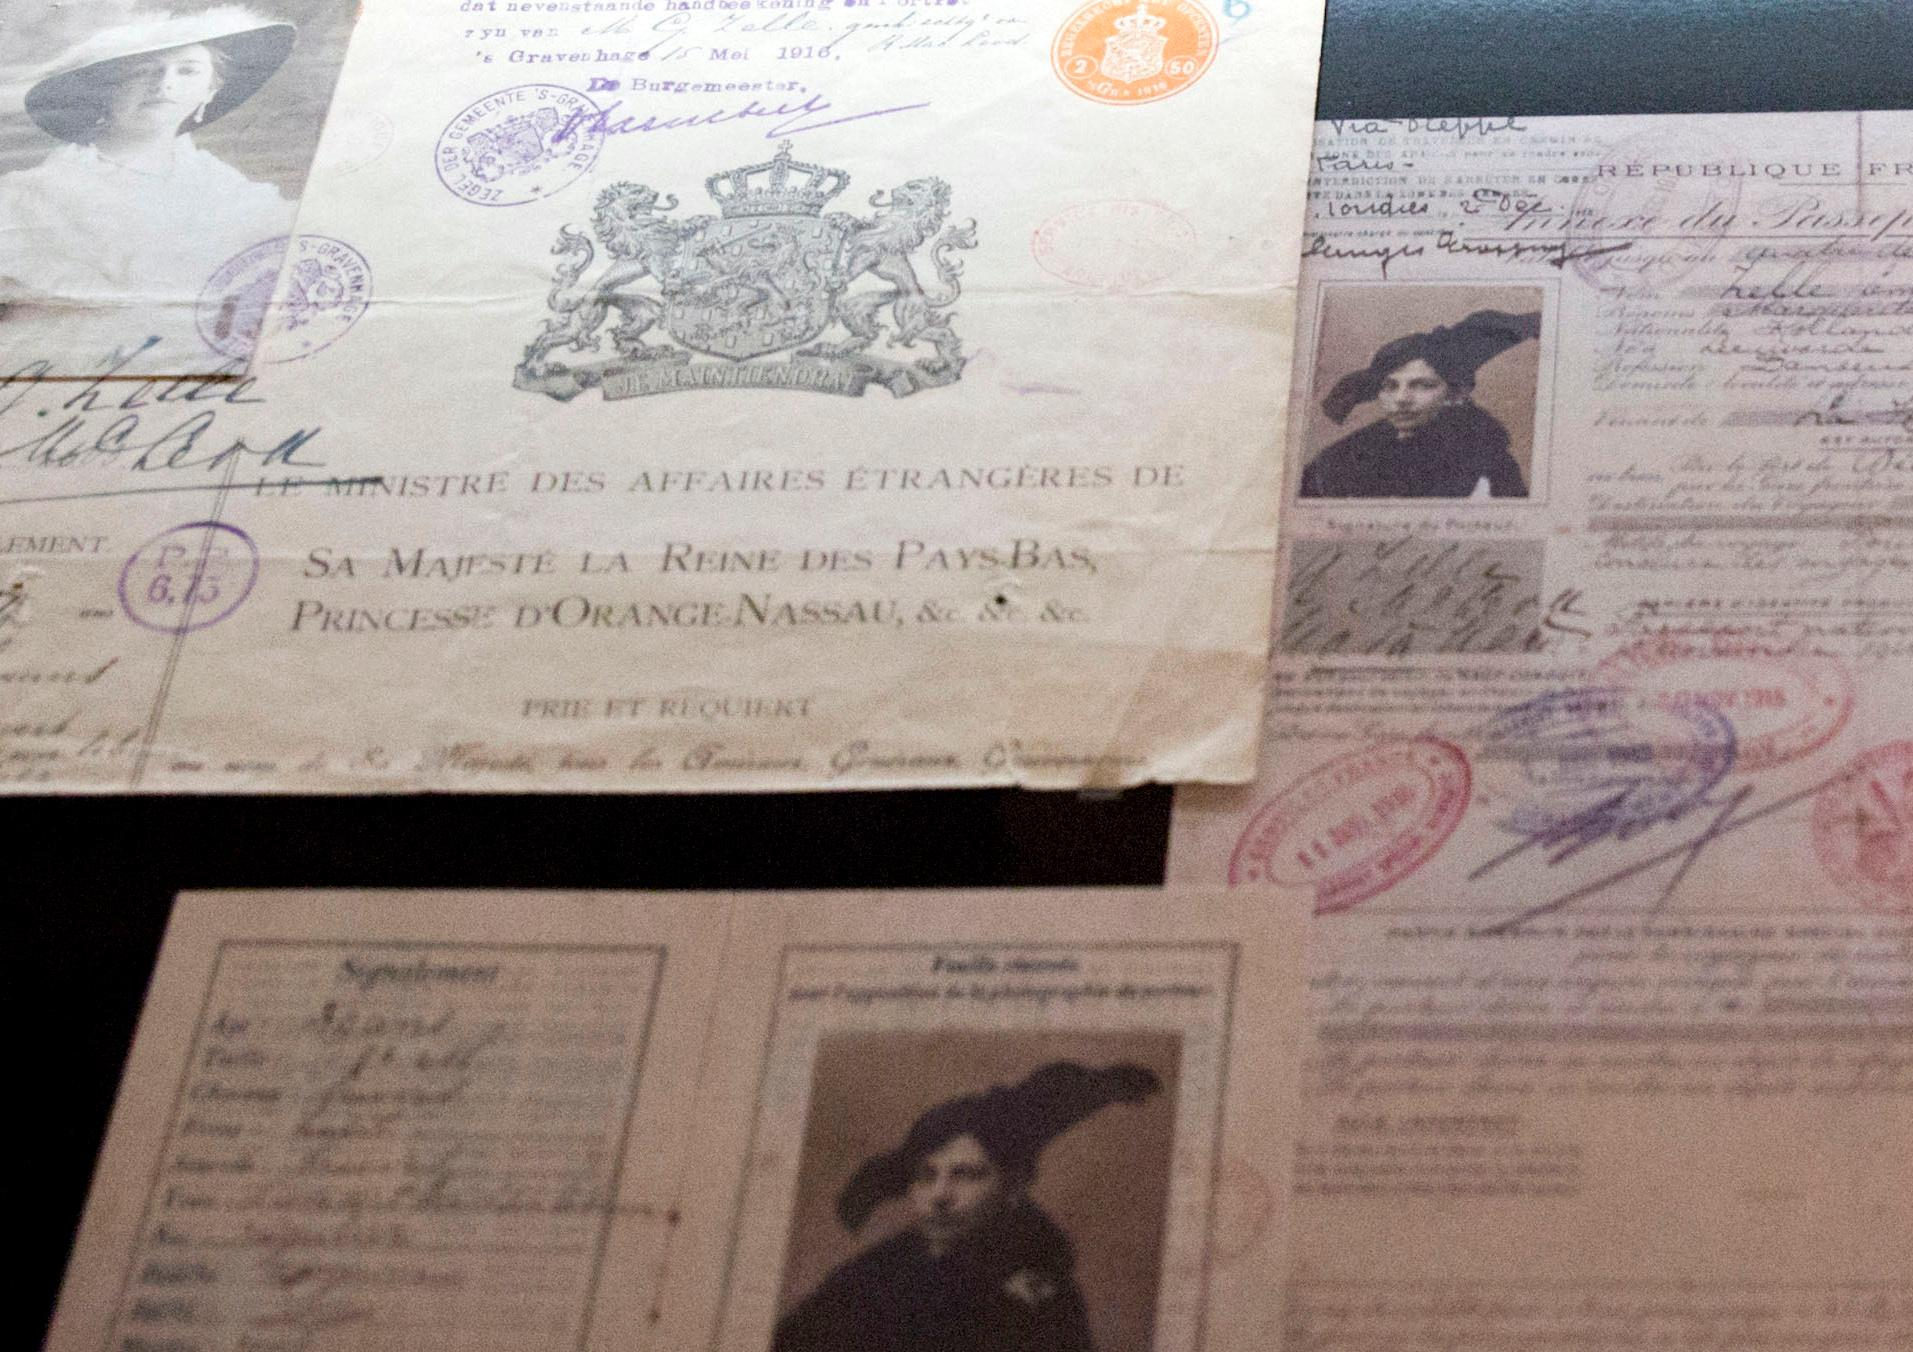 In this photo taken on Friday, Oct. 13, 2017, various identification documents of Margaretha Zelle, also known as Mata Hari, are on display at the Fries Museum in Leeuwarden, Netherlands. A century ago, on Oct. 15, 1917, an exotic dancer named Mata Hari was executed by a French firing squad, condemned as a sultry Dutch double agent who supposedly led tens of thousands of soldiers to their death during World War I. (AP Photo/Virginia Mayo)